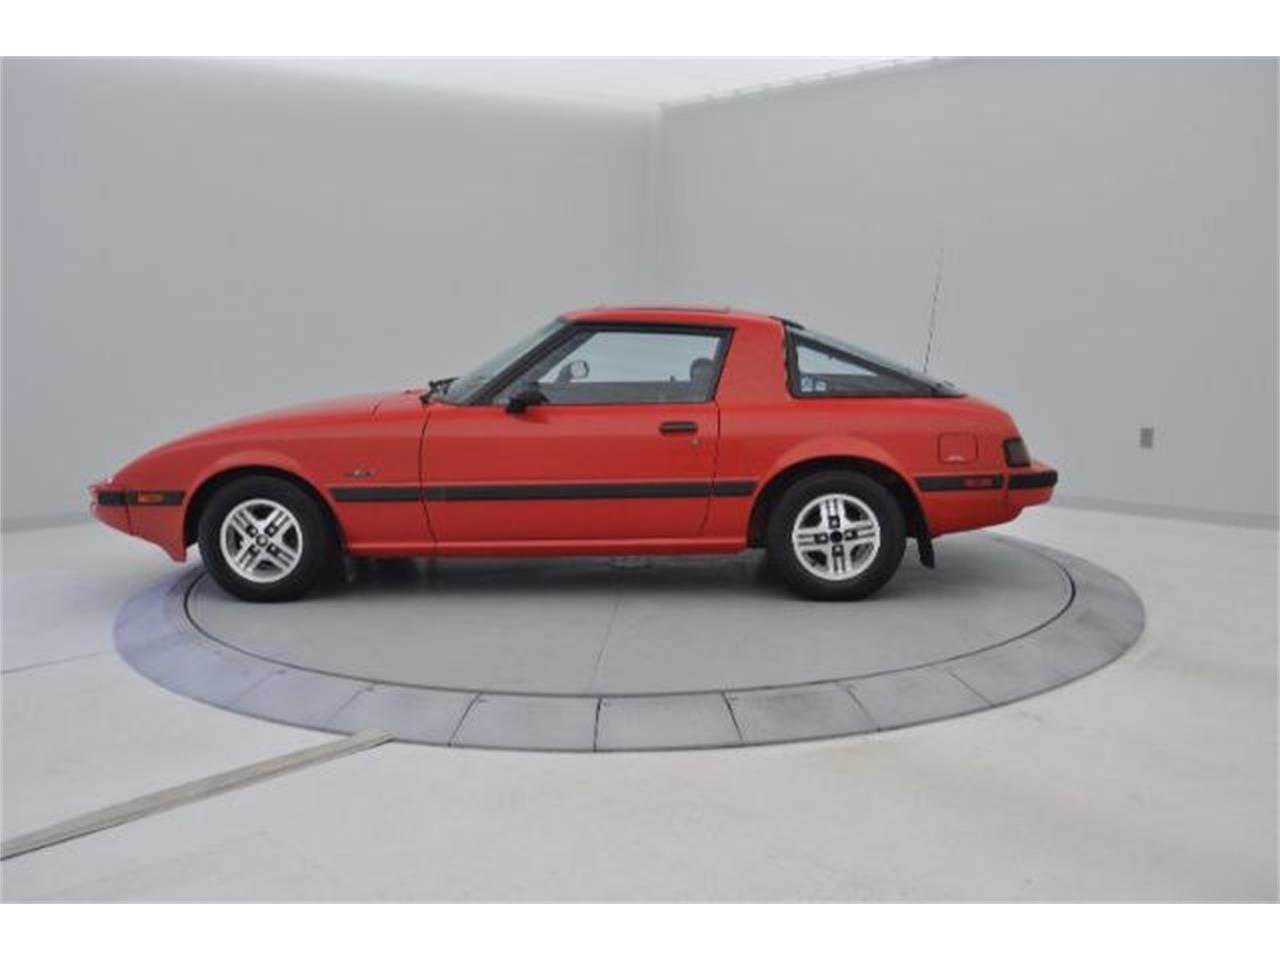 Large Picture of '83 Mazda RX-7 located in Hickory North Carolina - $18,995.00 - 9RP4